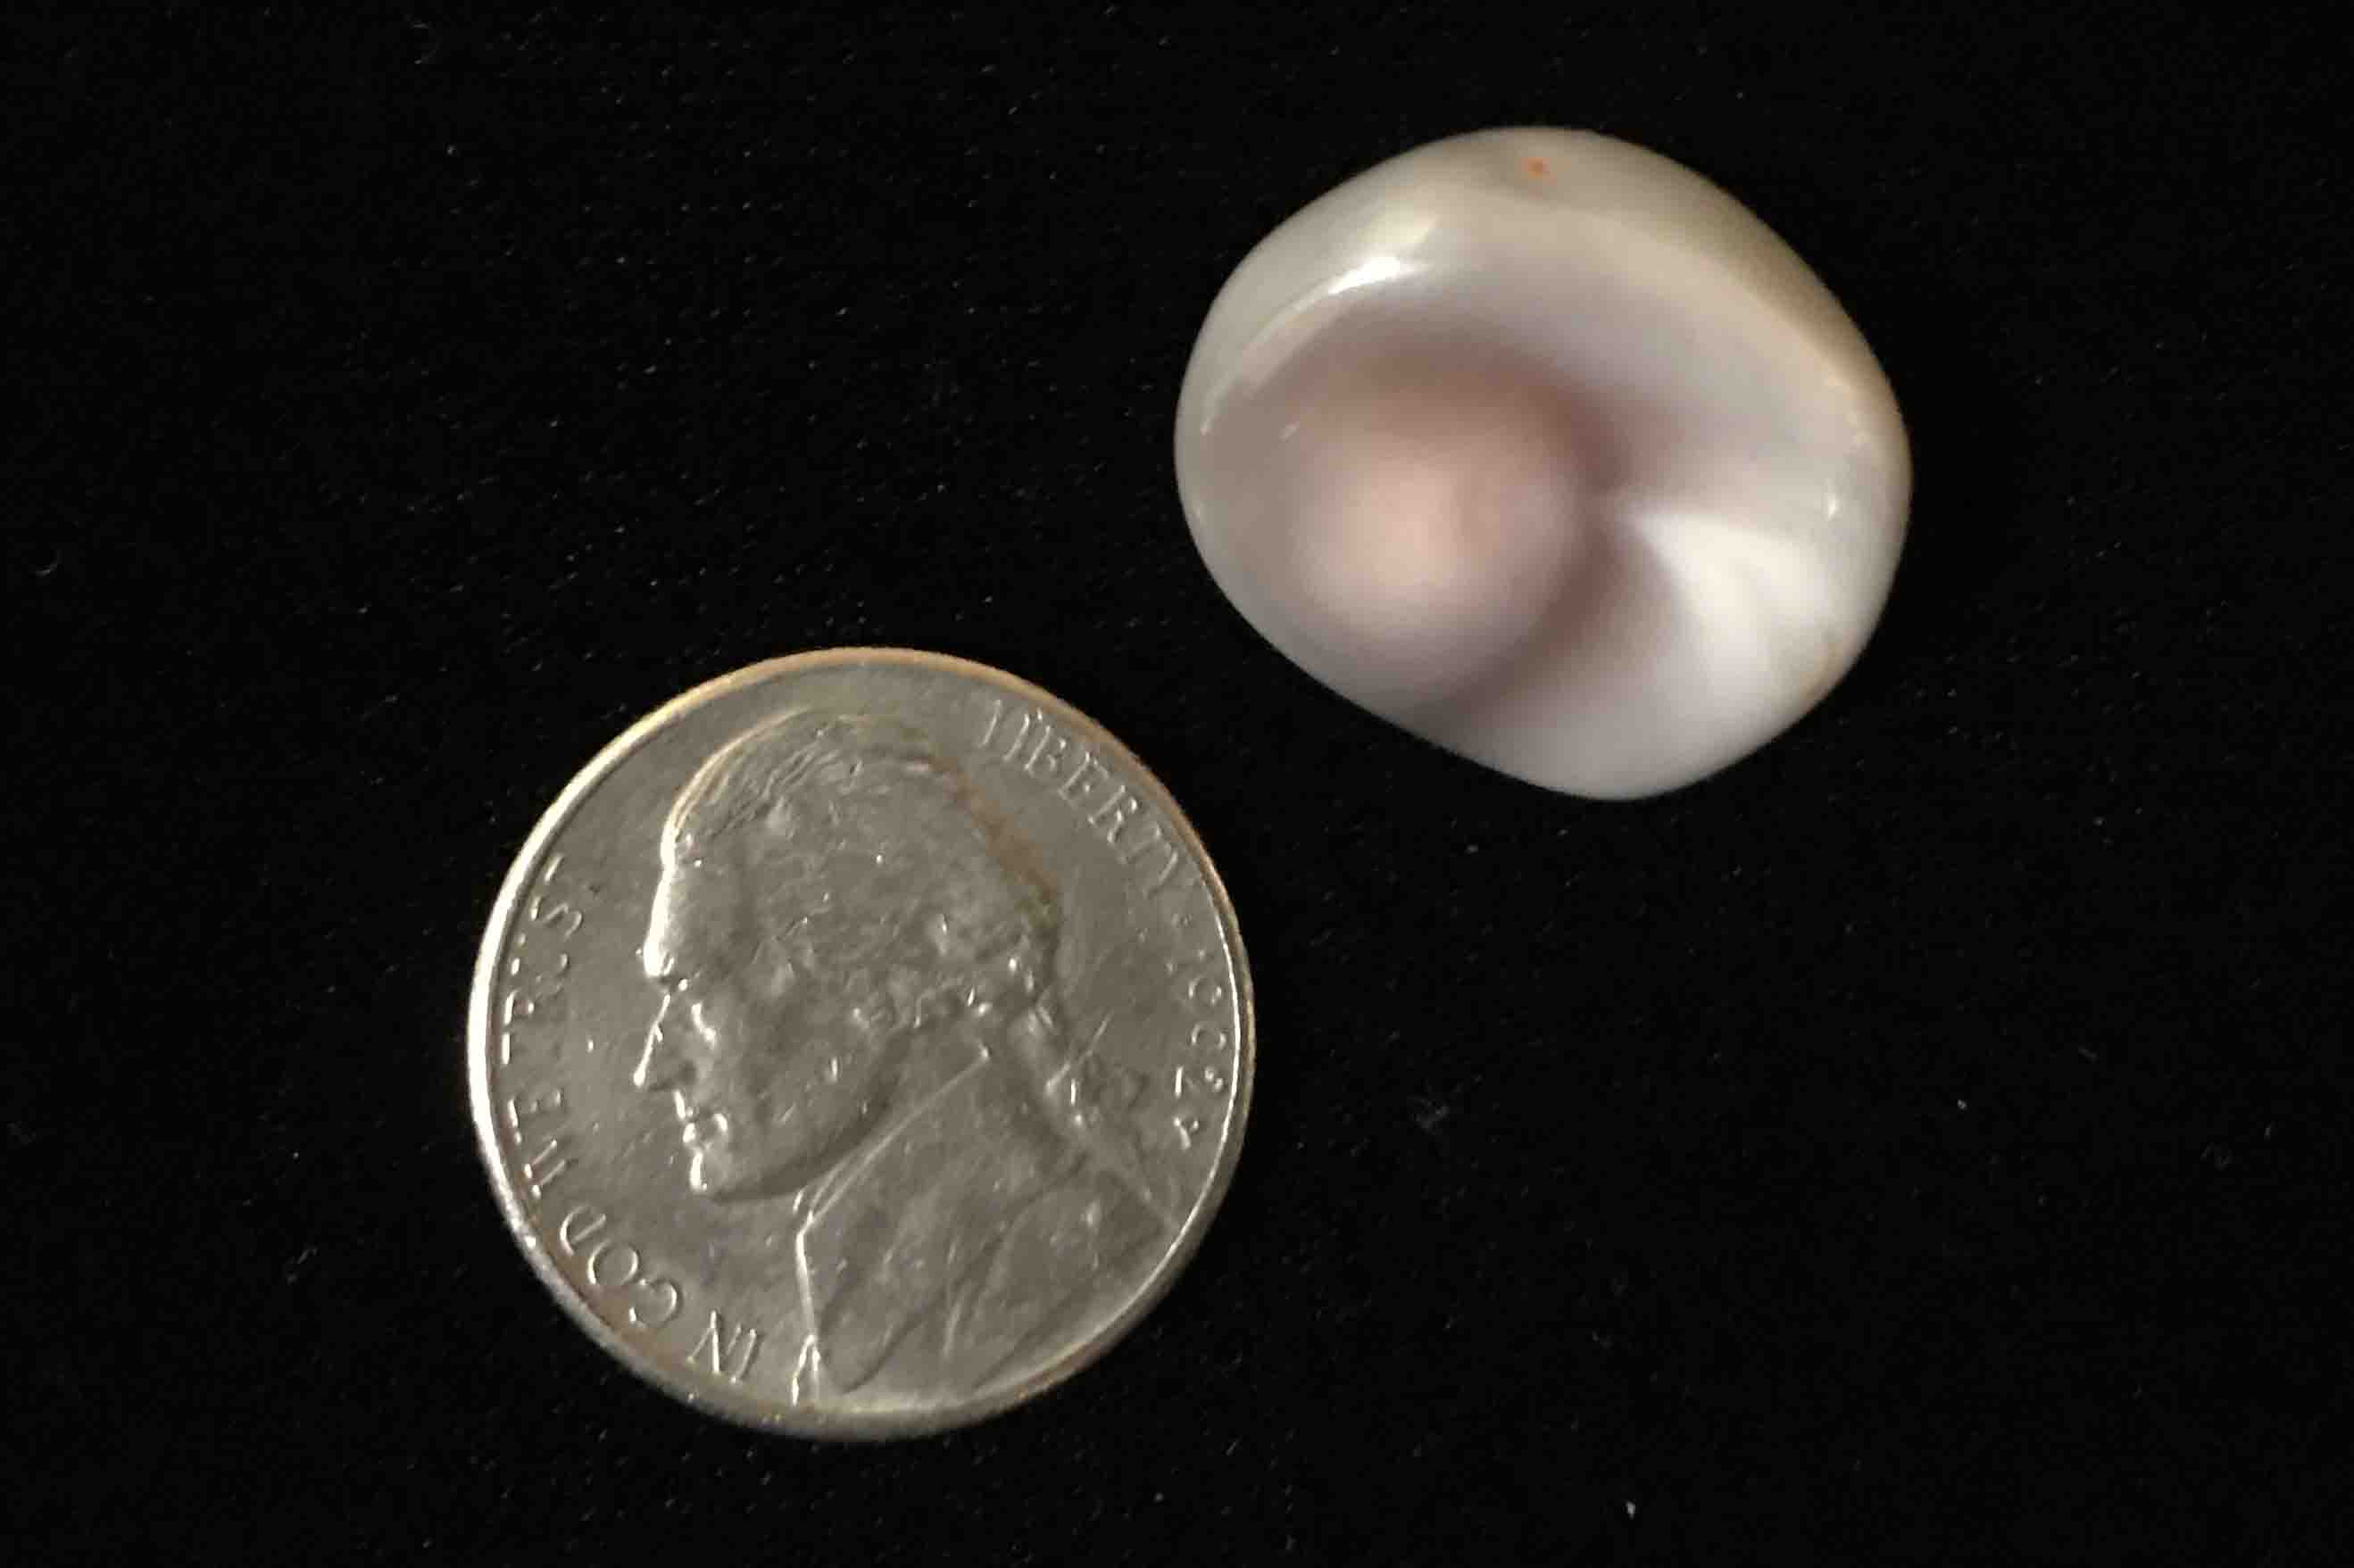 Botswana Agate size compared to a nickel